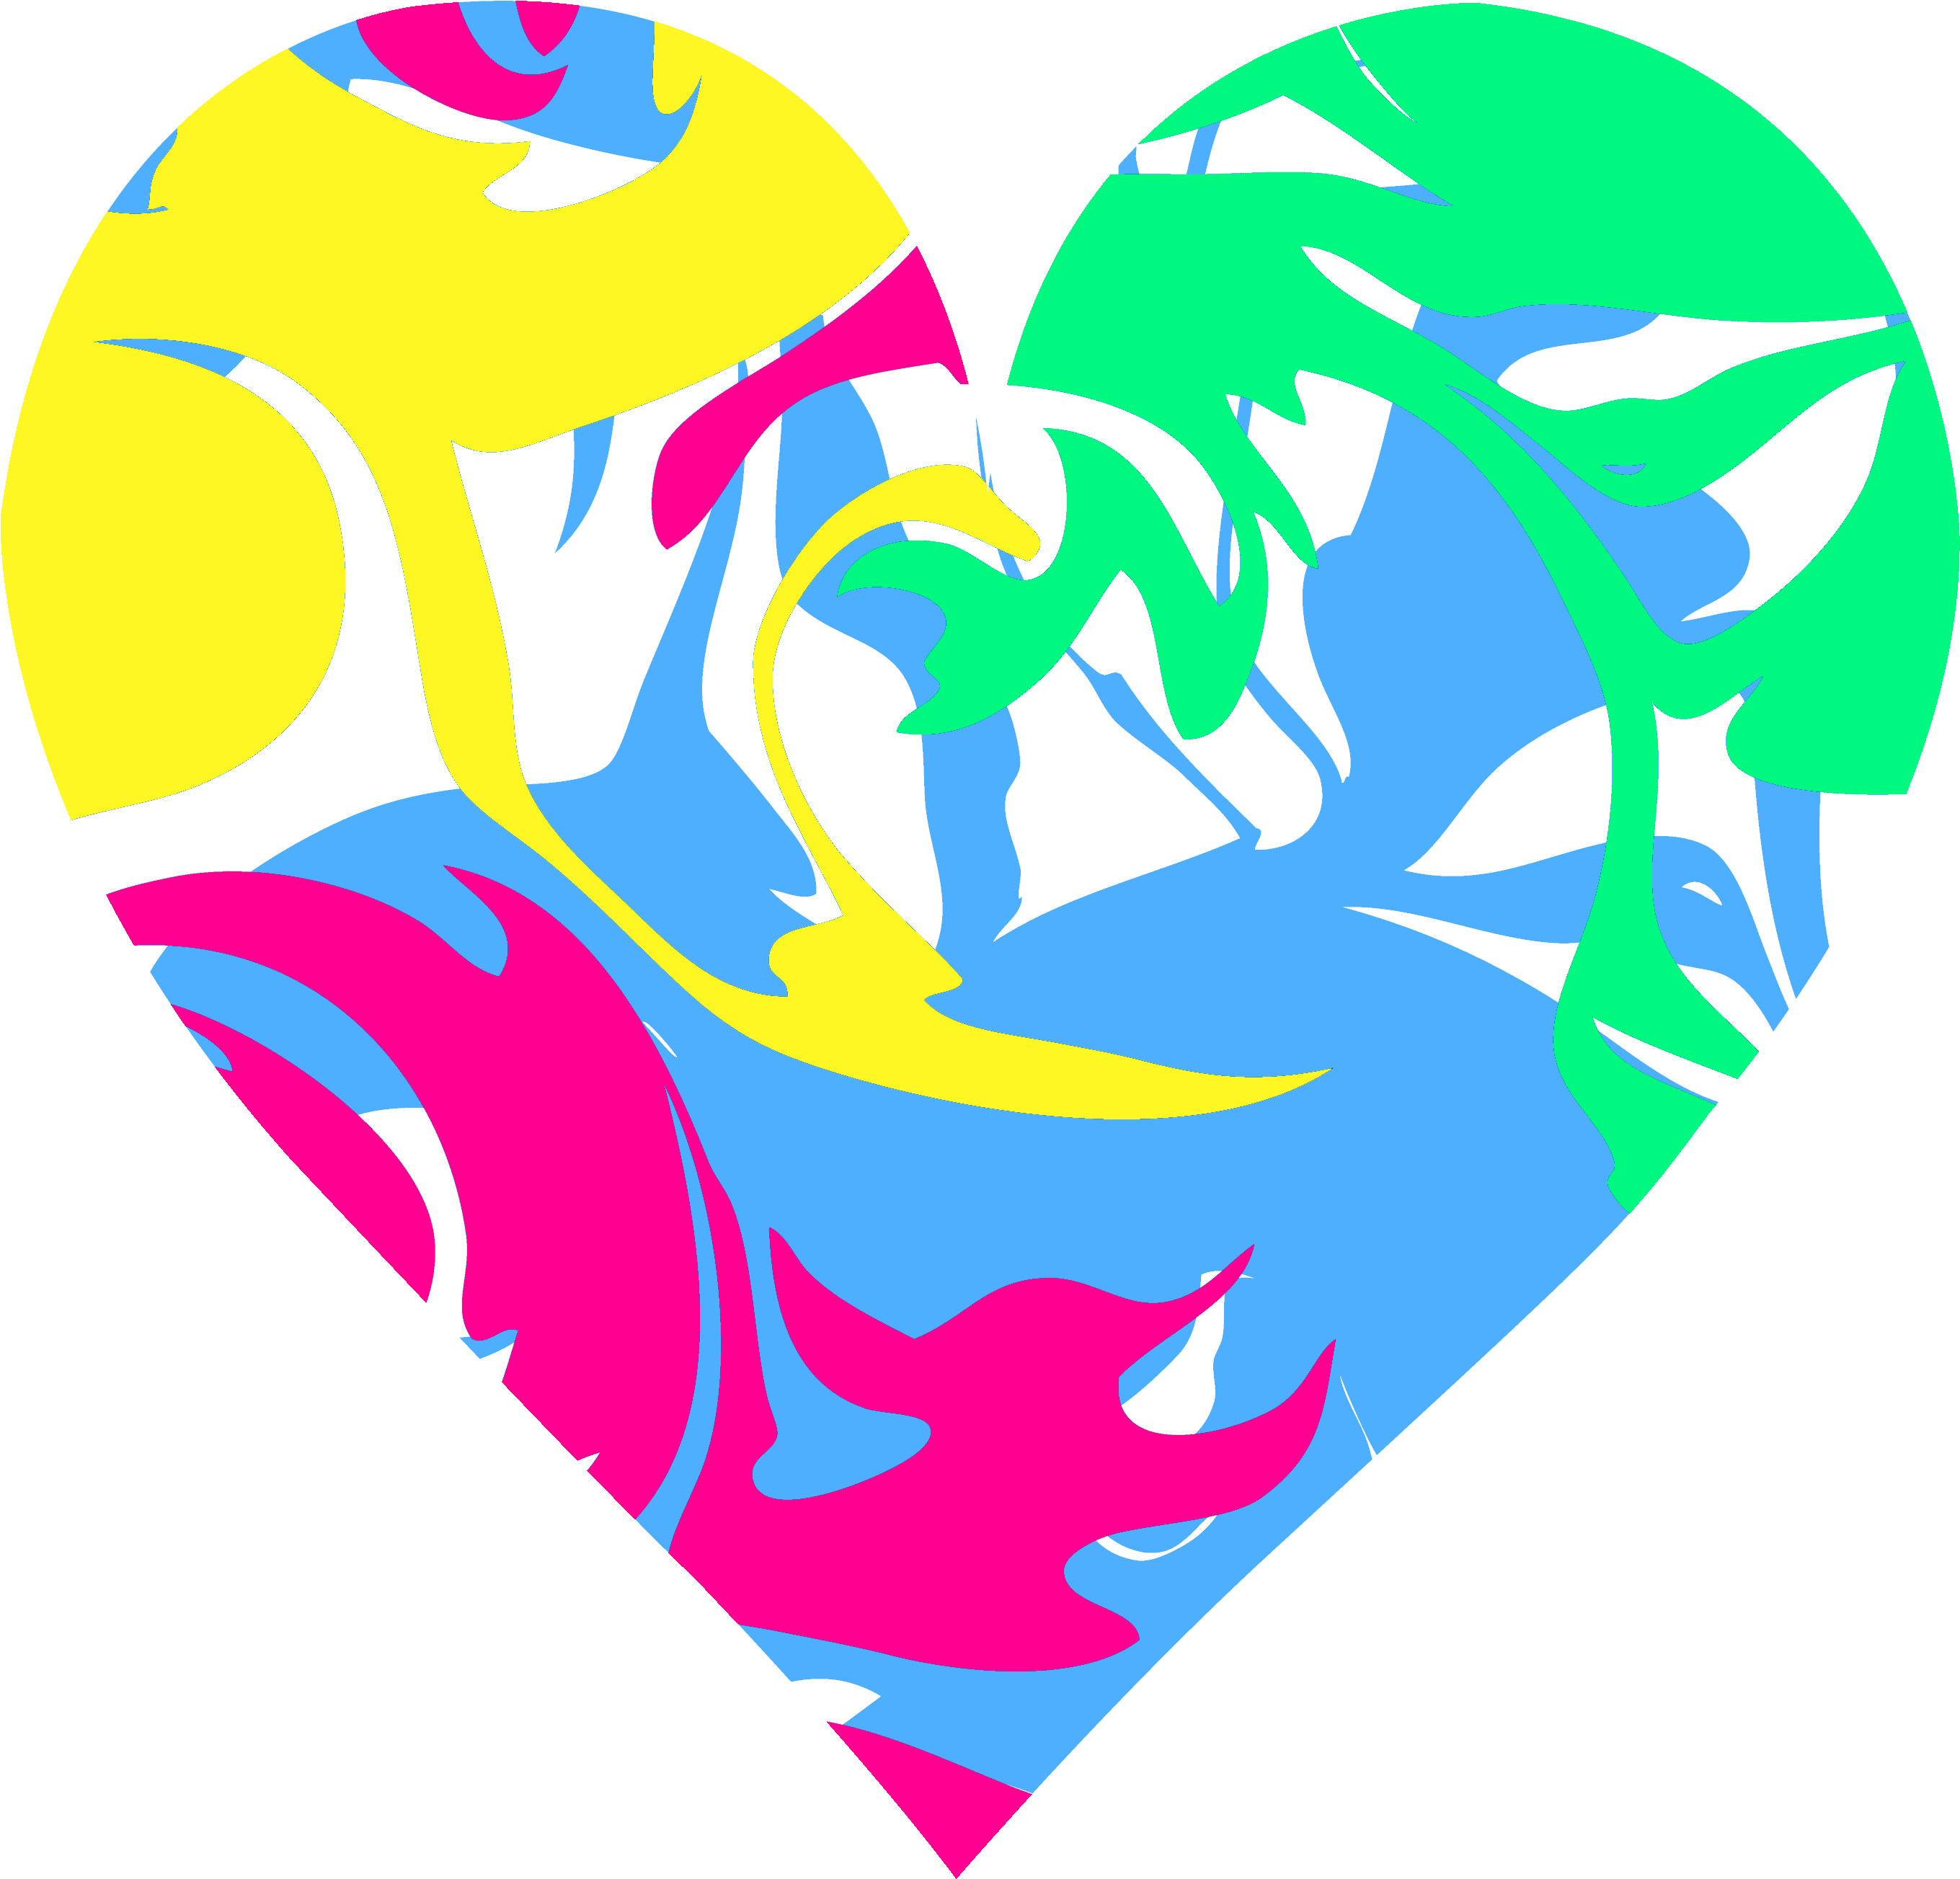 Heart clipart water. Hearts pretty colorful x